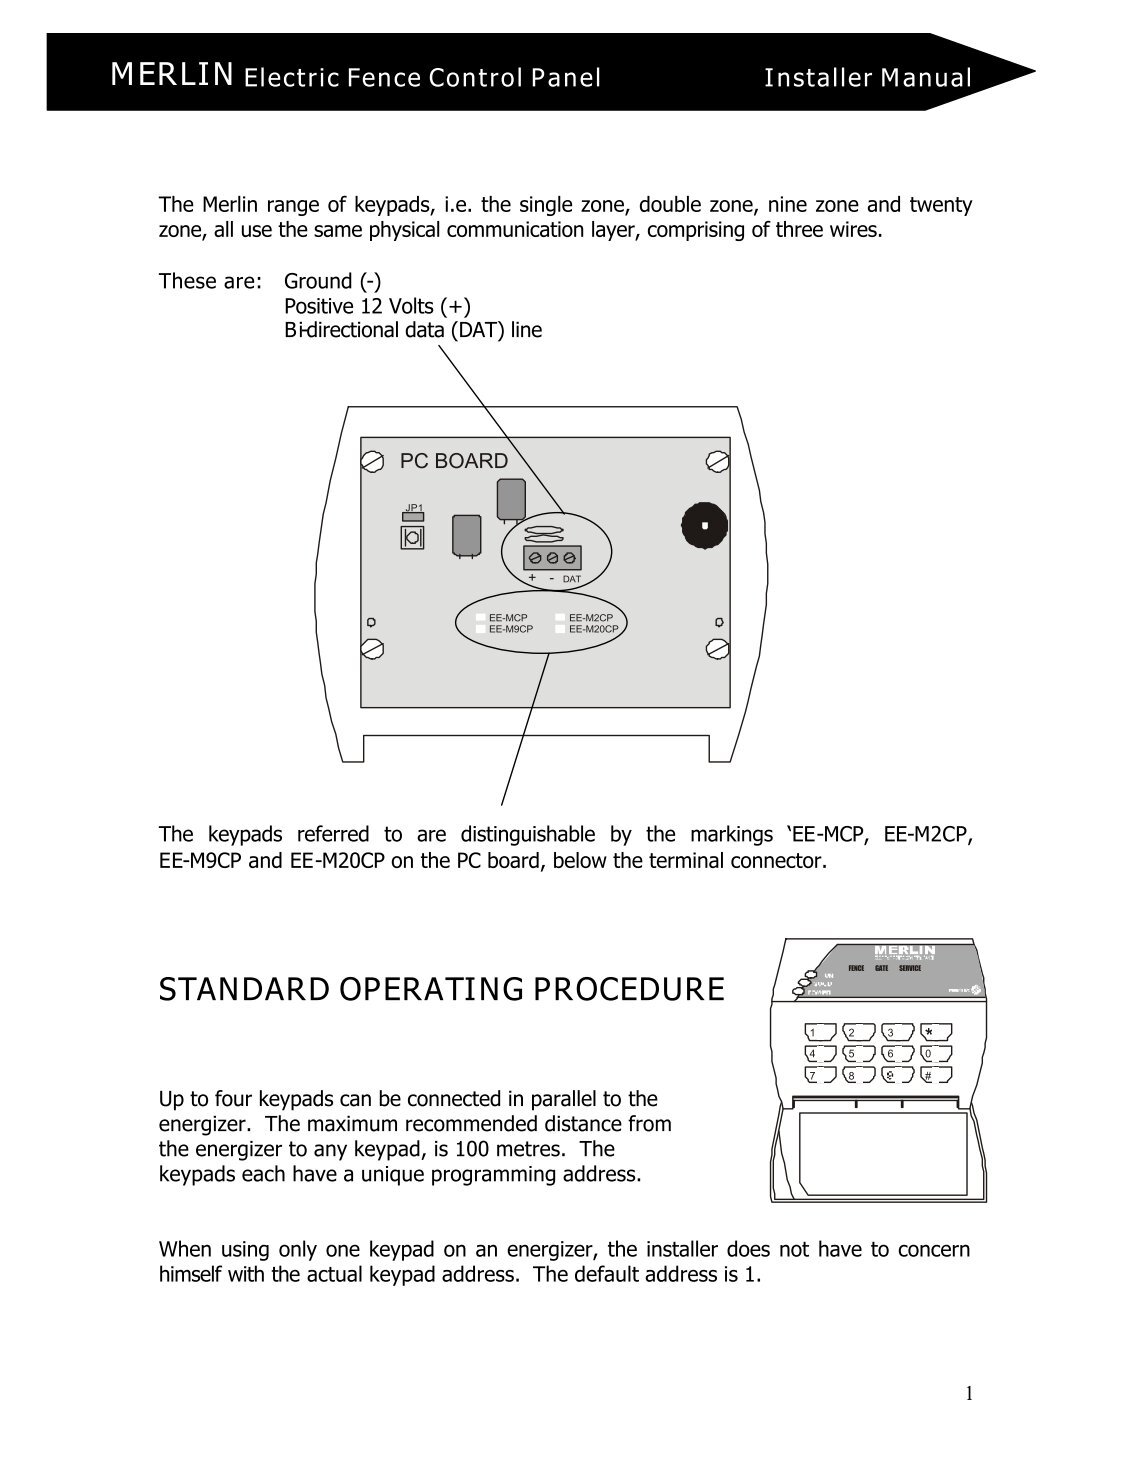 Merlin electric fence wiring diagram safety